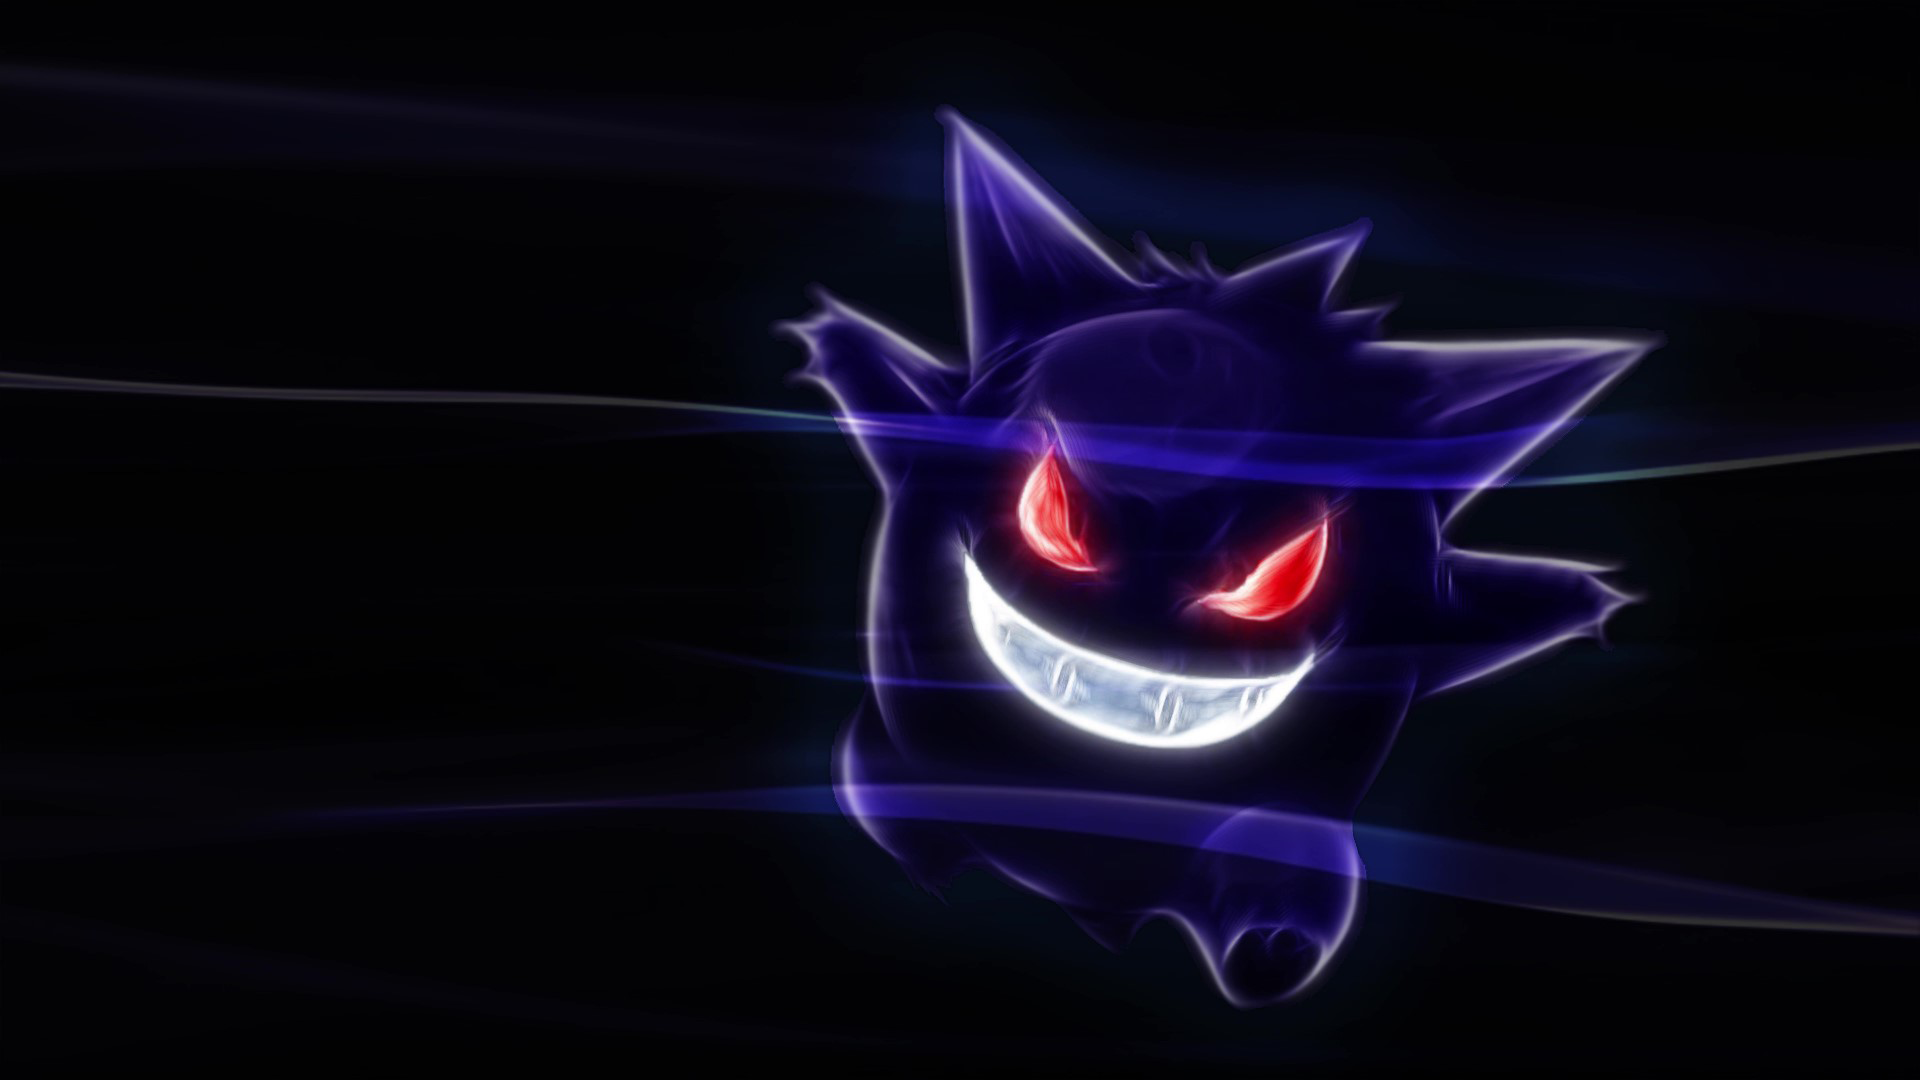 gengar live wallpaper 1920 x 1080 in 2020 anime on live wall id=50343